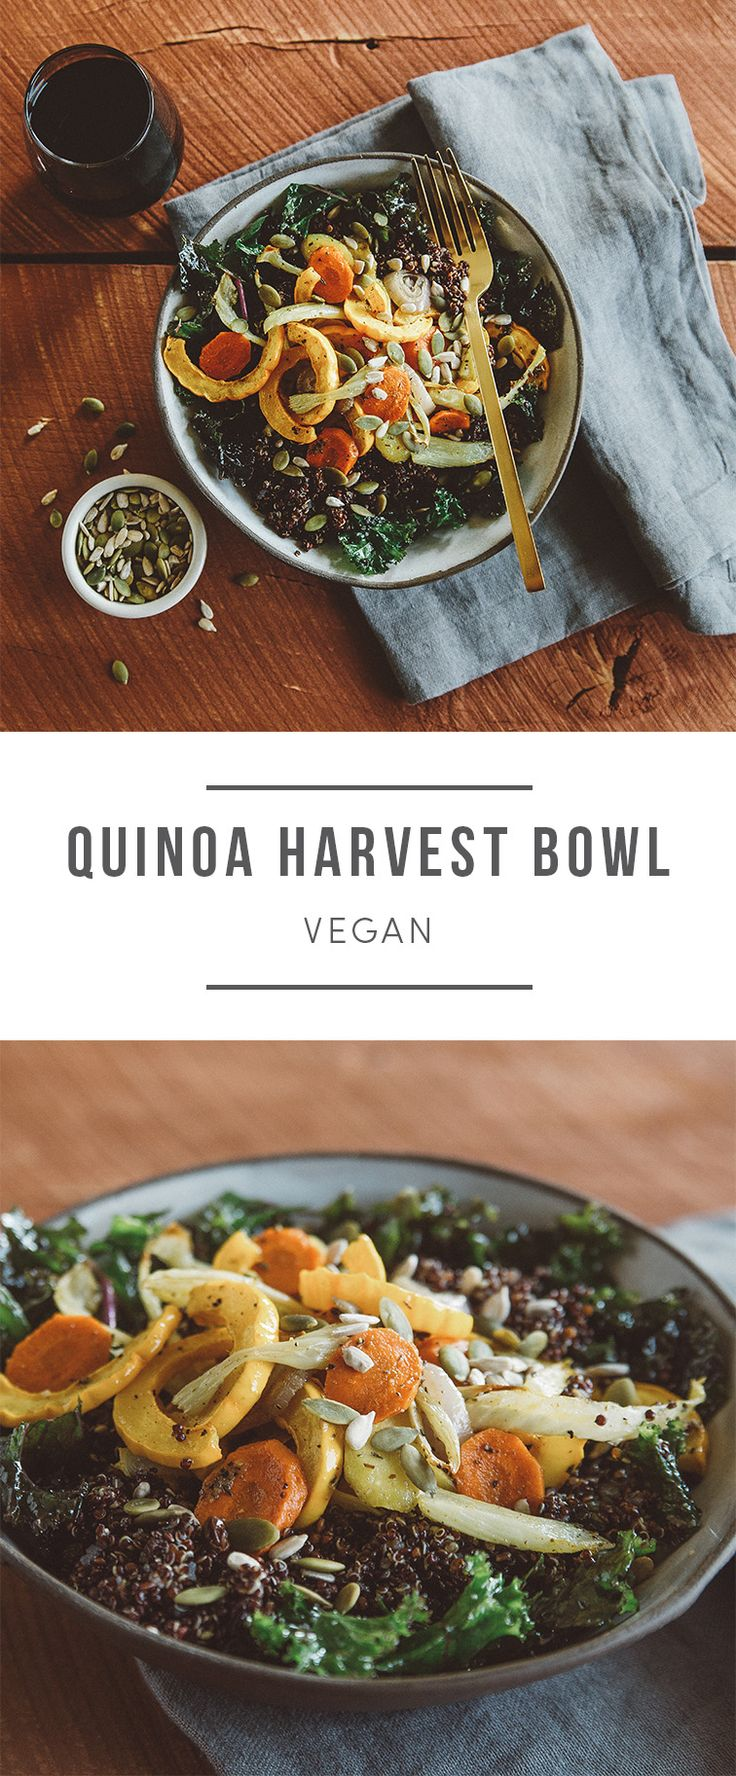 This vegan bowl is packed with protein and antioxidants. Squash, carrots, shallot, and fennel are seasoned with a sage-ginger spice blend, then roasted tender. Recipe here: https://greenchef.com/recipes/black-quinoa-harvest-bowl-with-roasted-veggies?utm_source=pinterest&utm_medium=link&utm_campaign=social&utm_content=quinoa-harvest-bowl